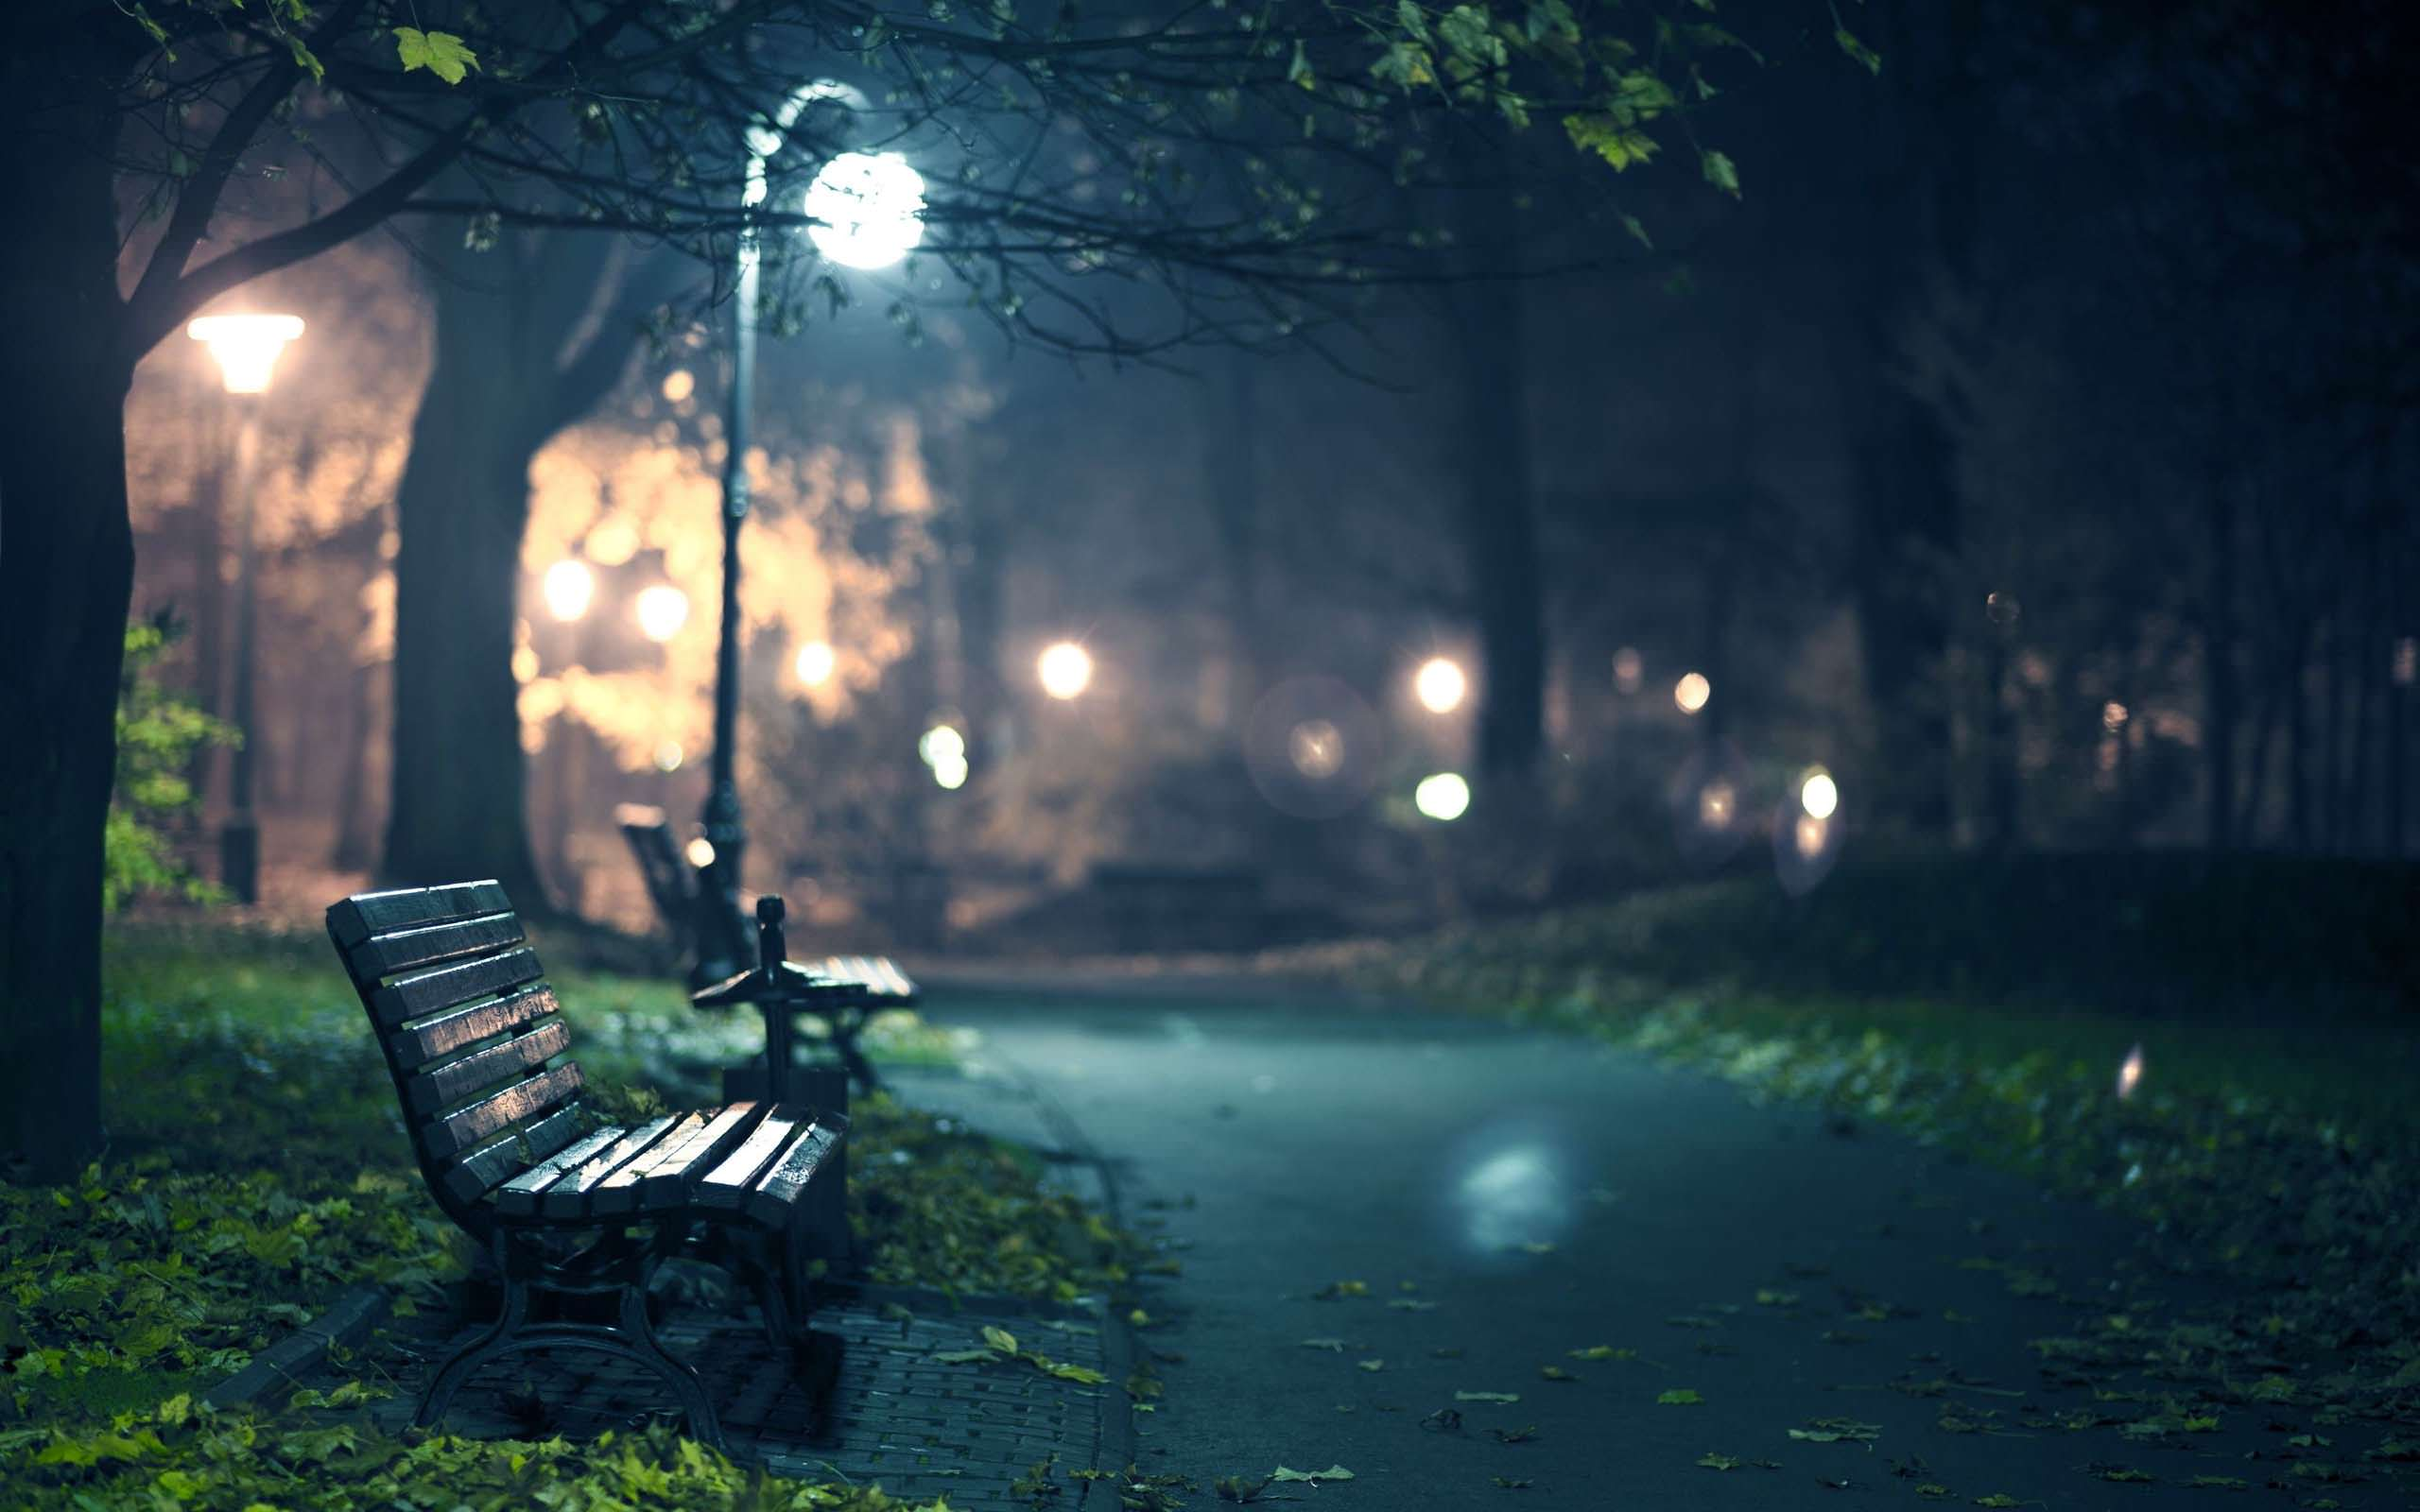 2560x1600 Photography Park Bench At Night Wallpaper 2560x1600 - Cool PC Wallpapers